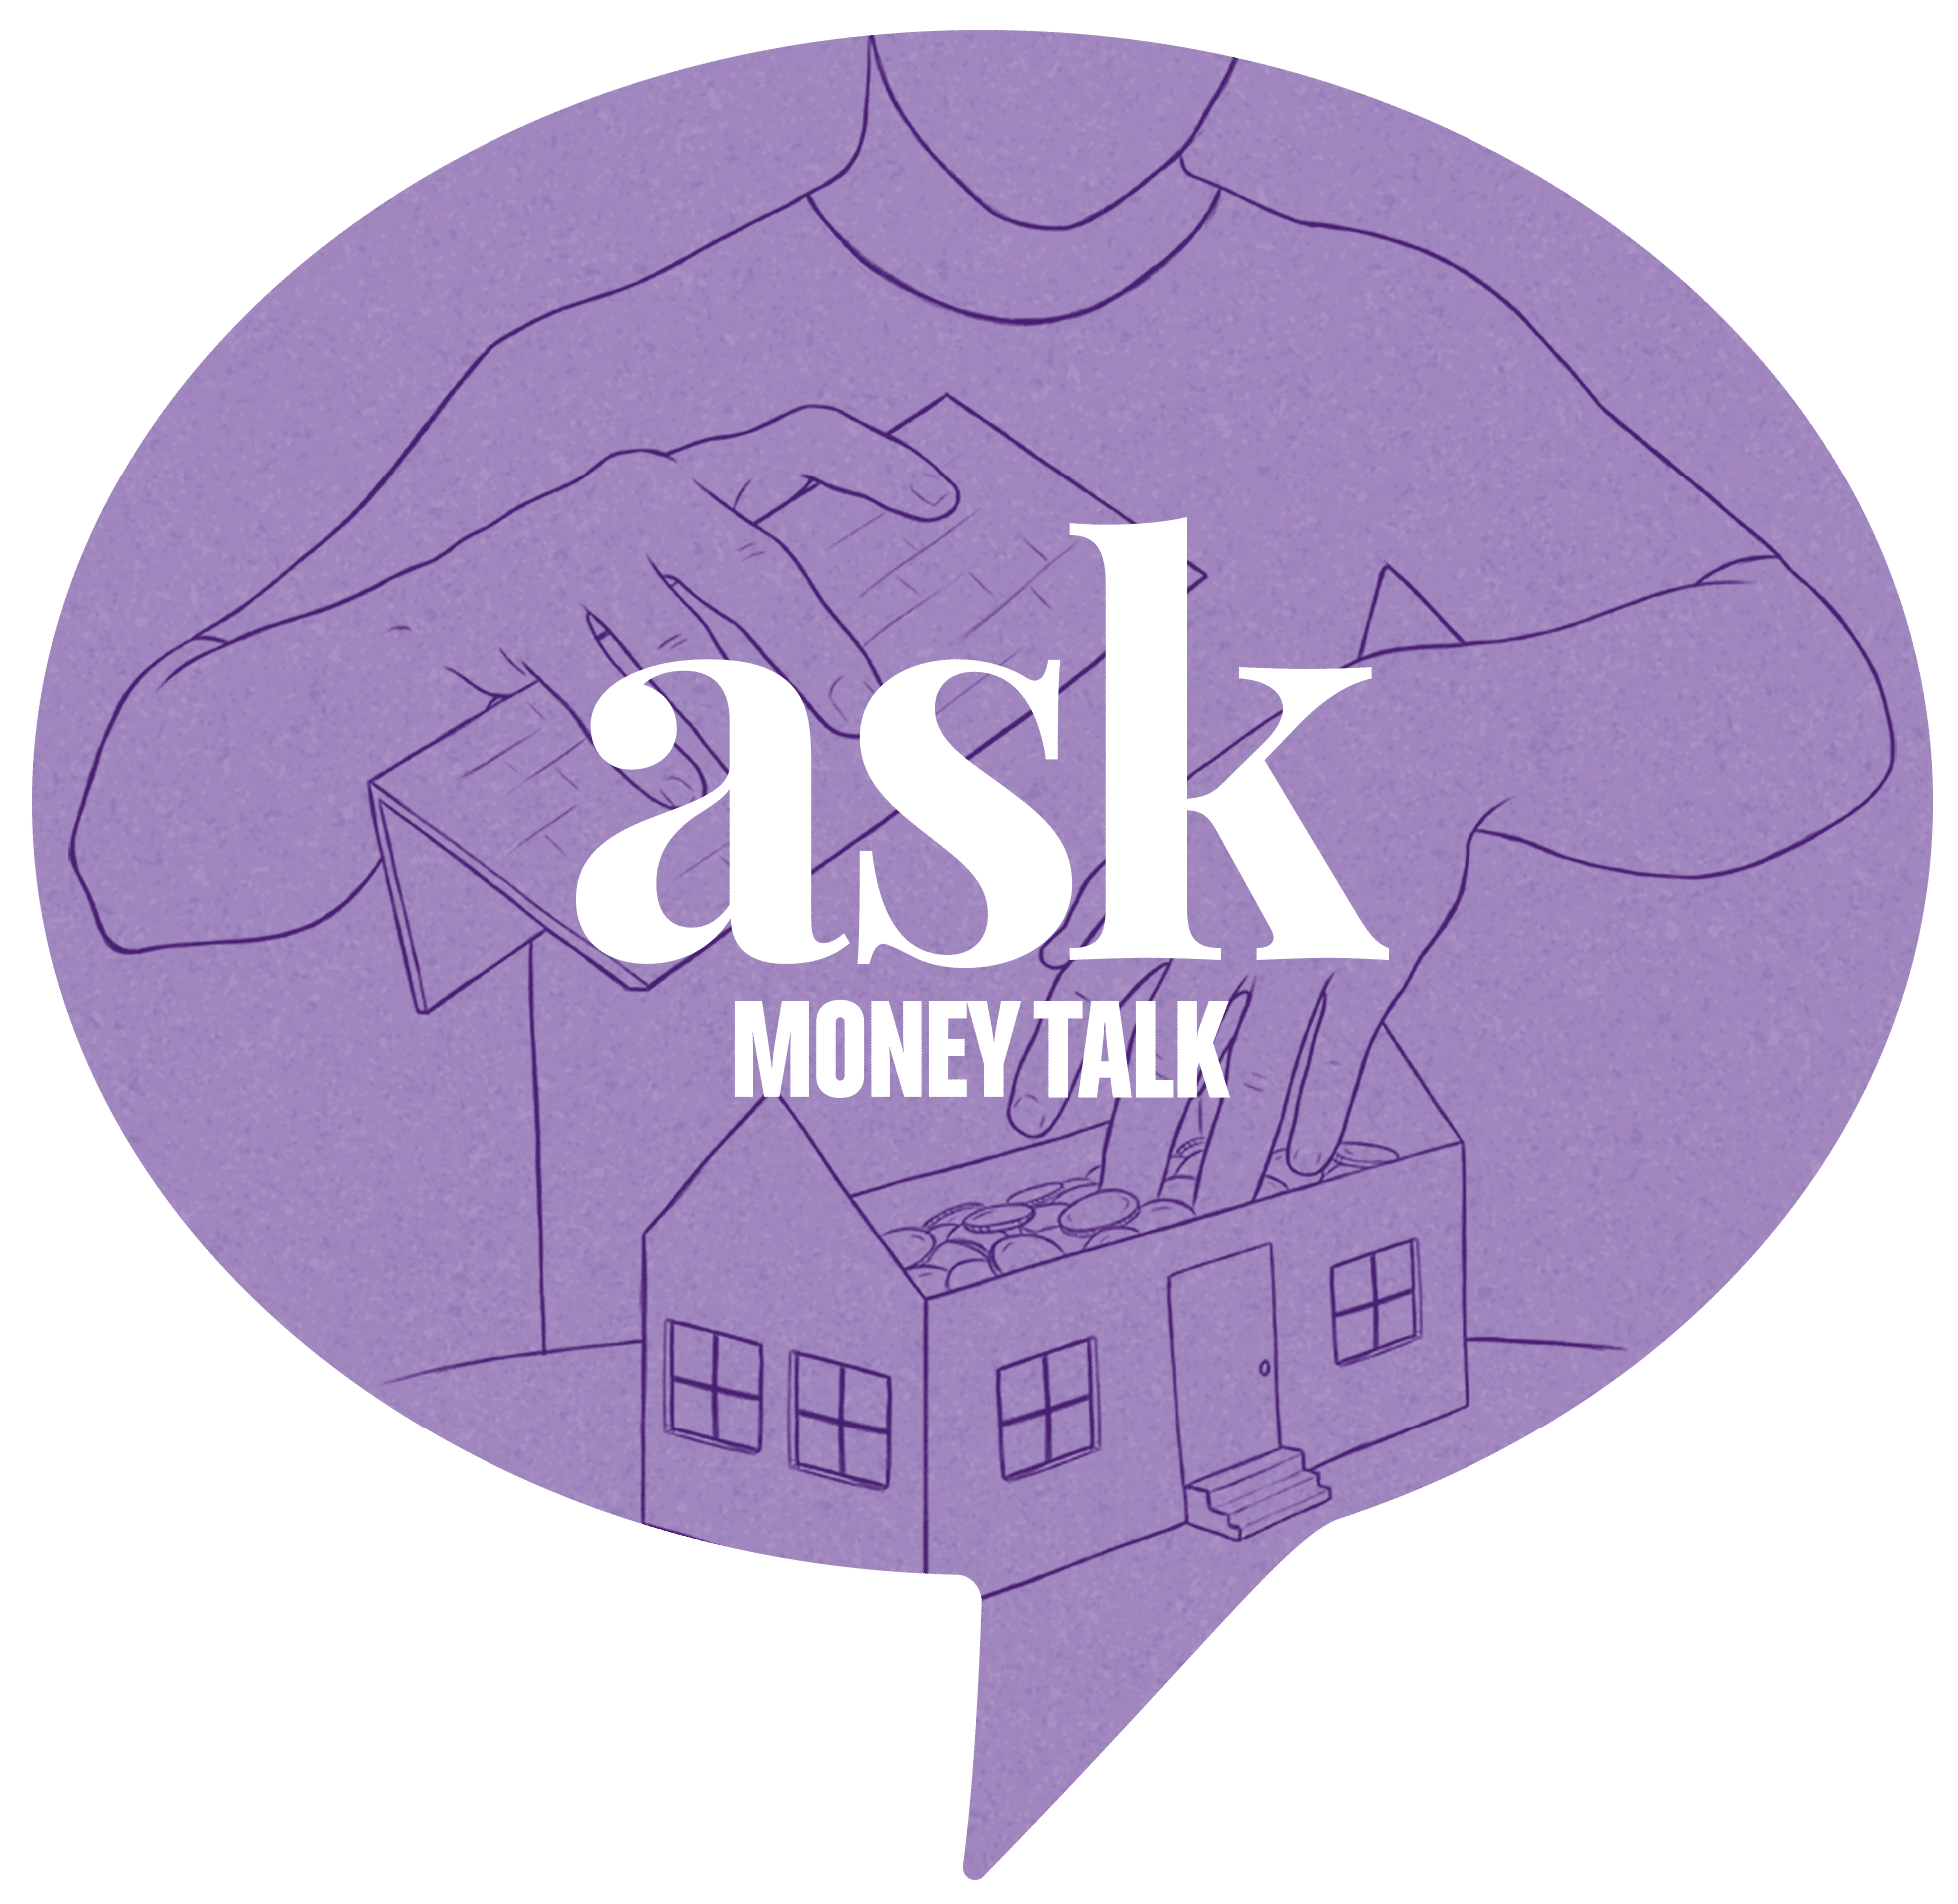 a picture of the ask money talk logo with backdrop depicting a person withdrawing coins from a miniature house figure